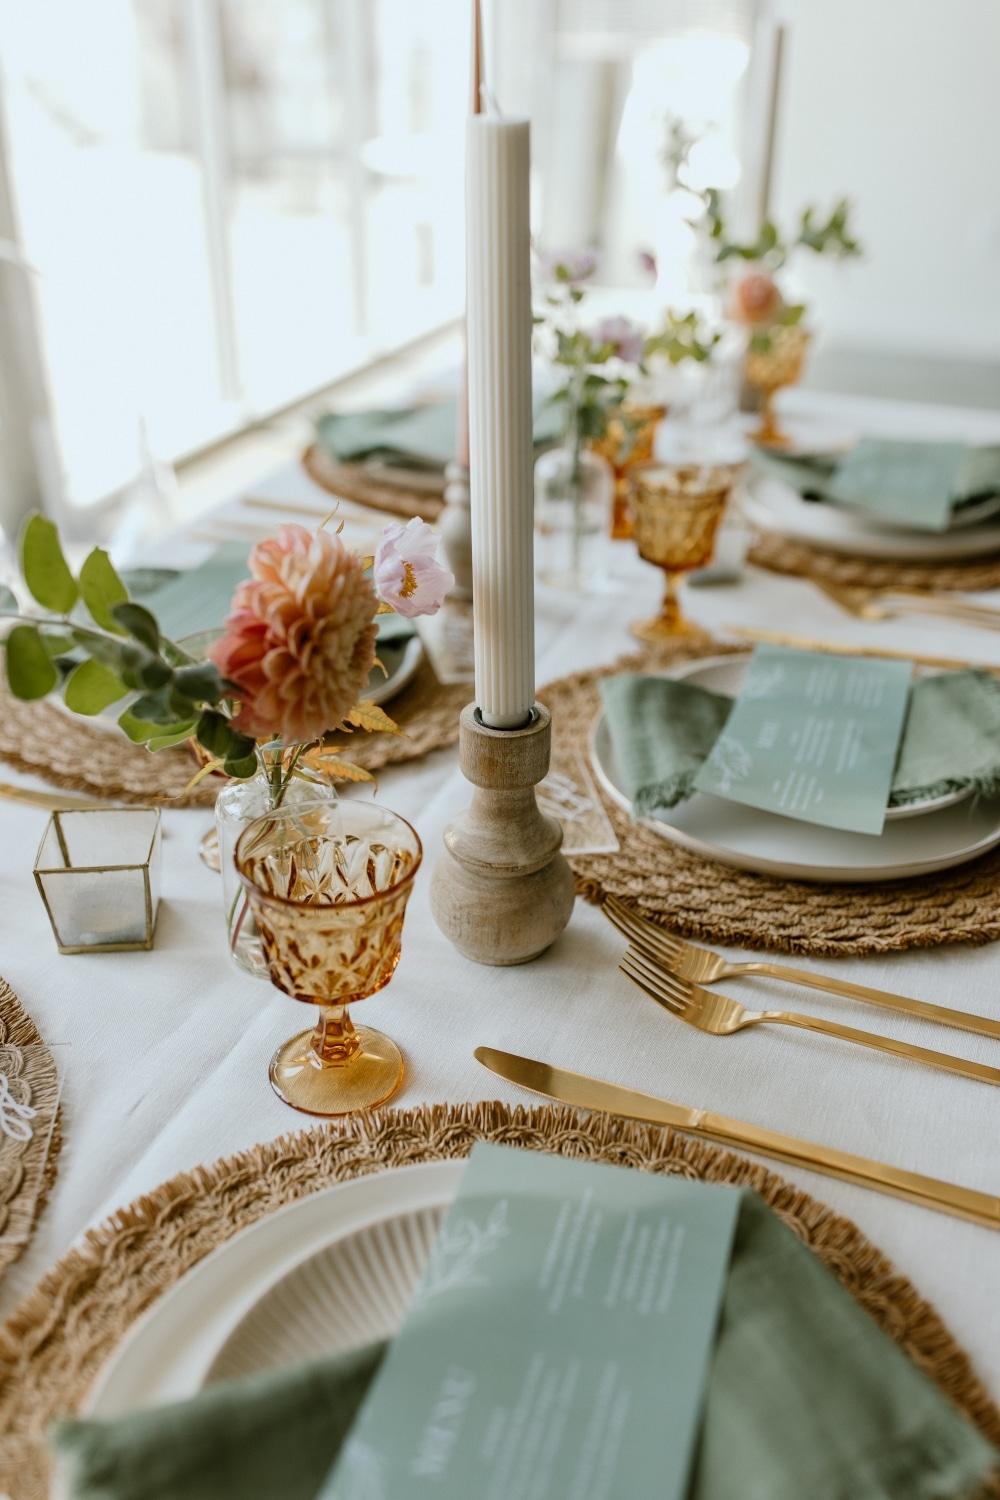 rustic wedding table setting with emerald green napkins